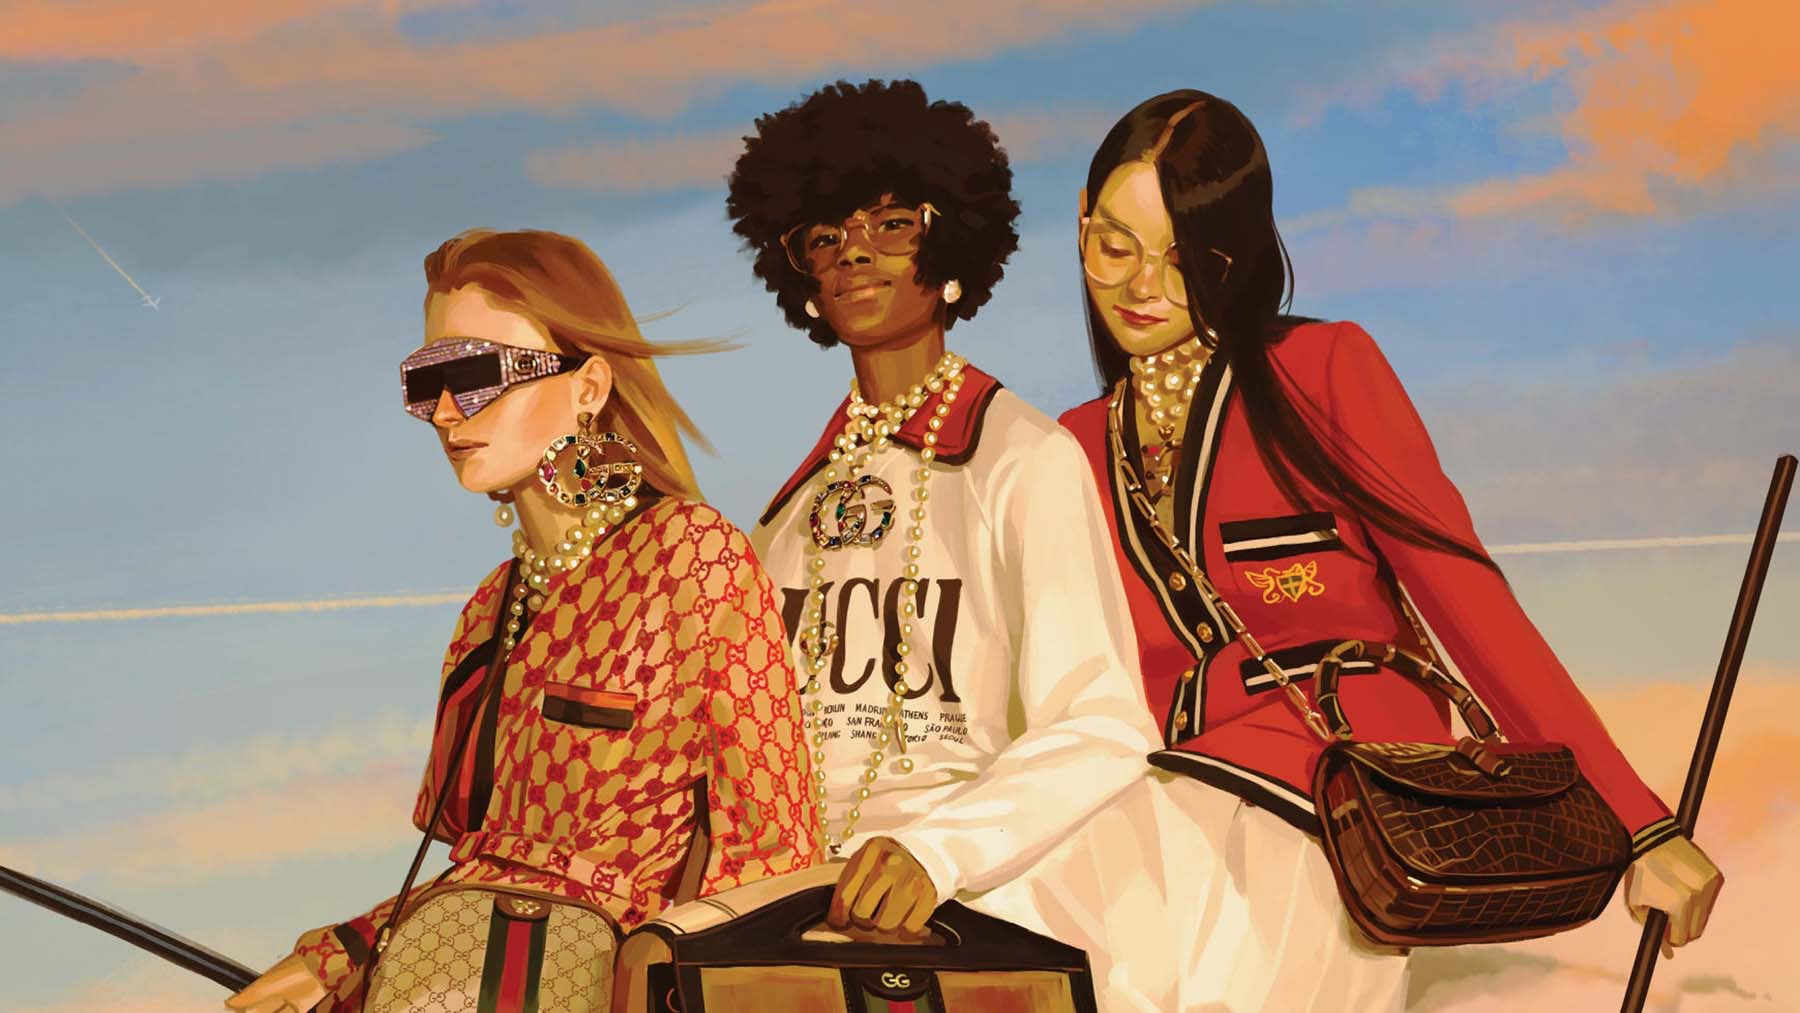 Gucci Aims for €10 Billion Revenue Threshold